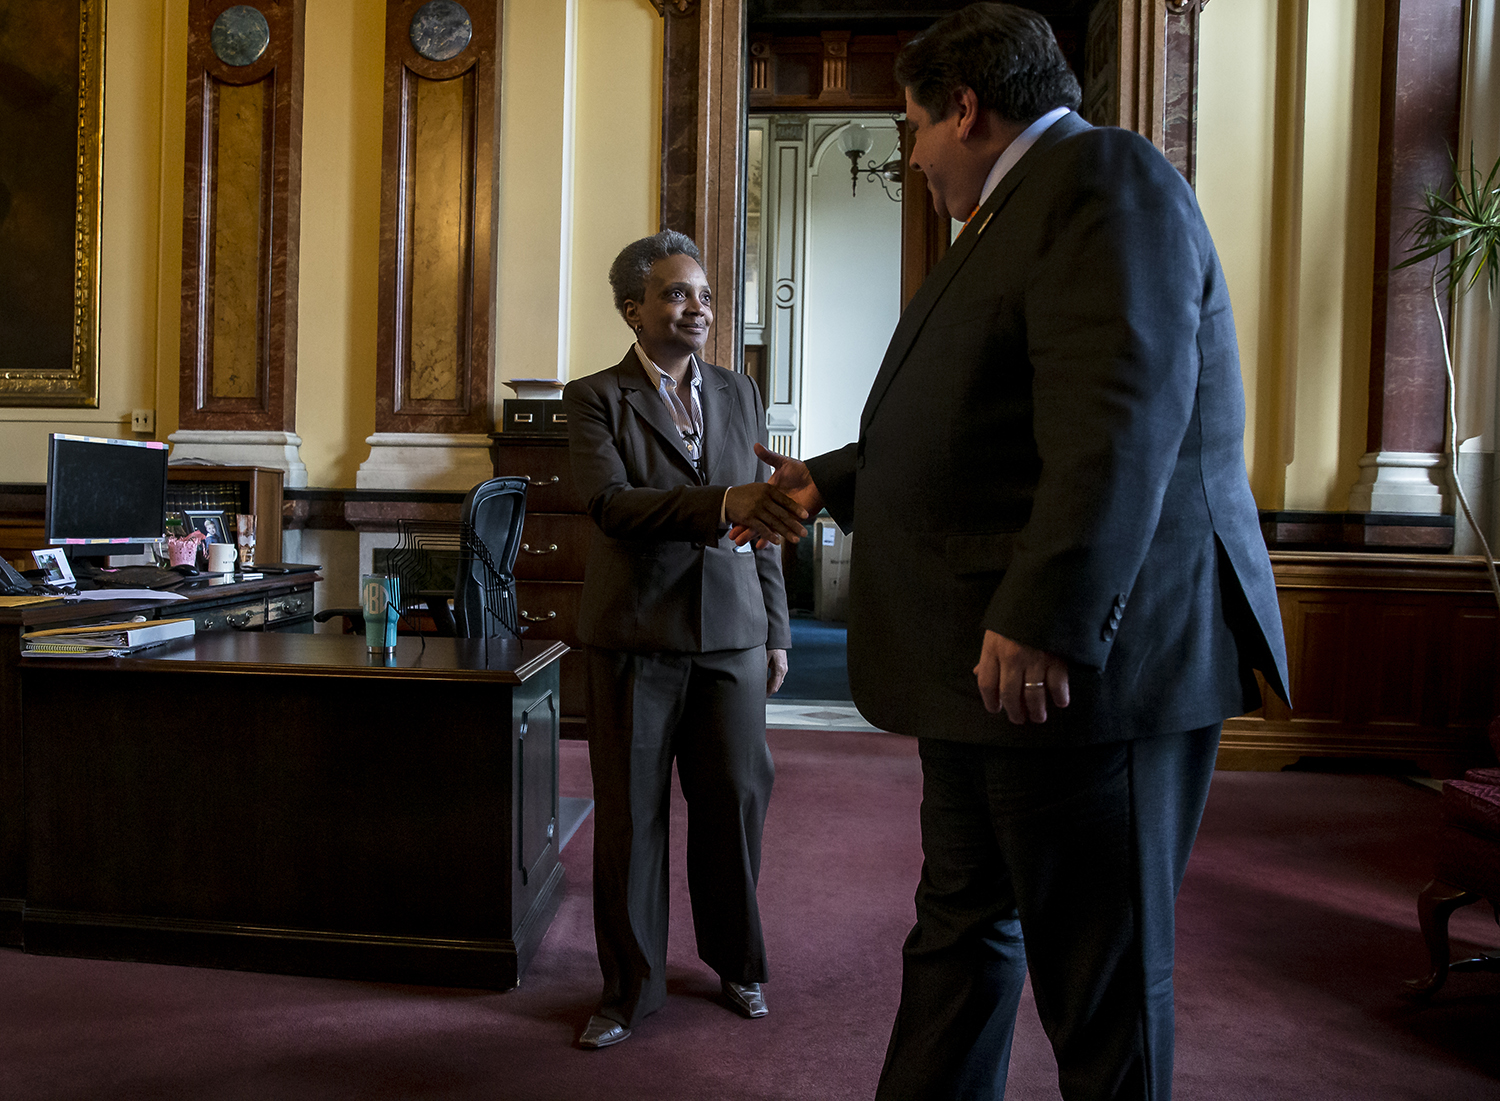 Chicago Mayor-elect Lori Lightfoot shakes hands with Illinois Governor J.B. Pritzker after they held a meeting together in his offices at the Illinois State Capitol, Wednesday, April 10, 2019, in Springfield, Ill. [Justin L. Fowler/The State Journal-Register]